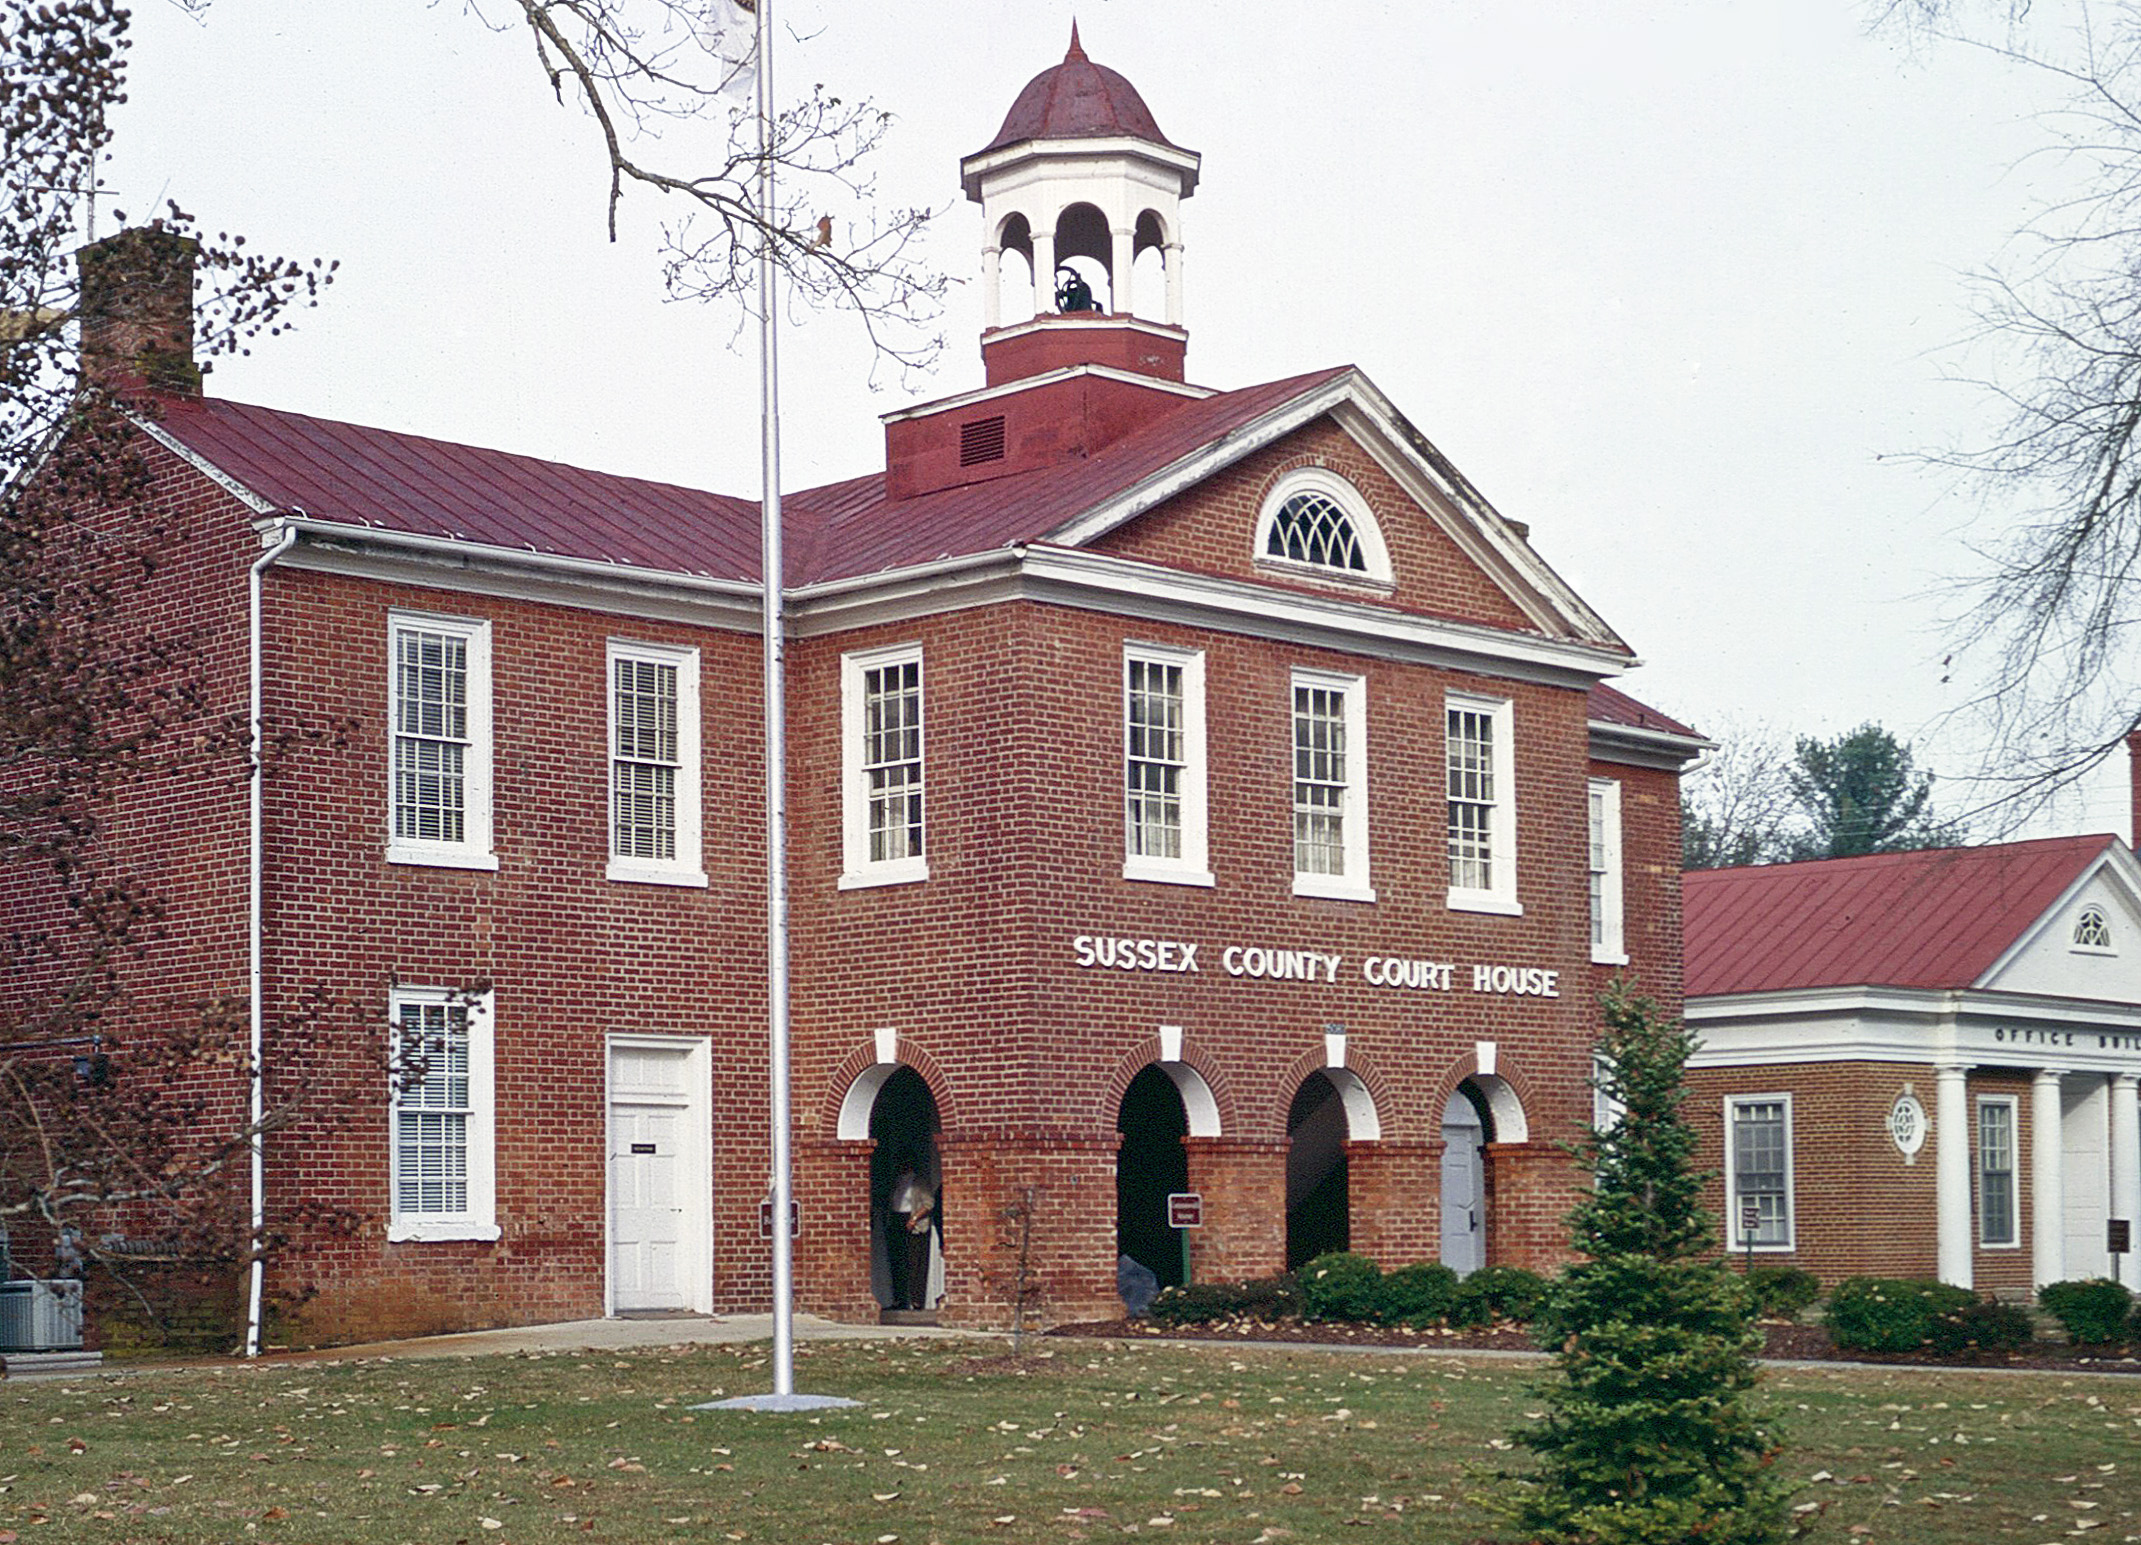 Sussex County Court House Historic District